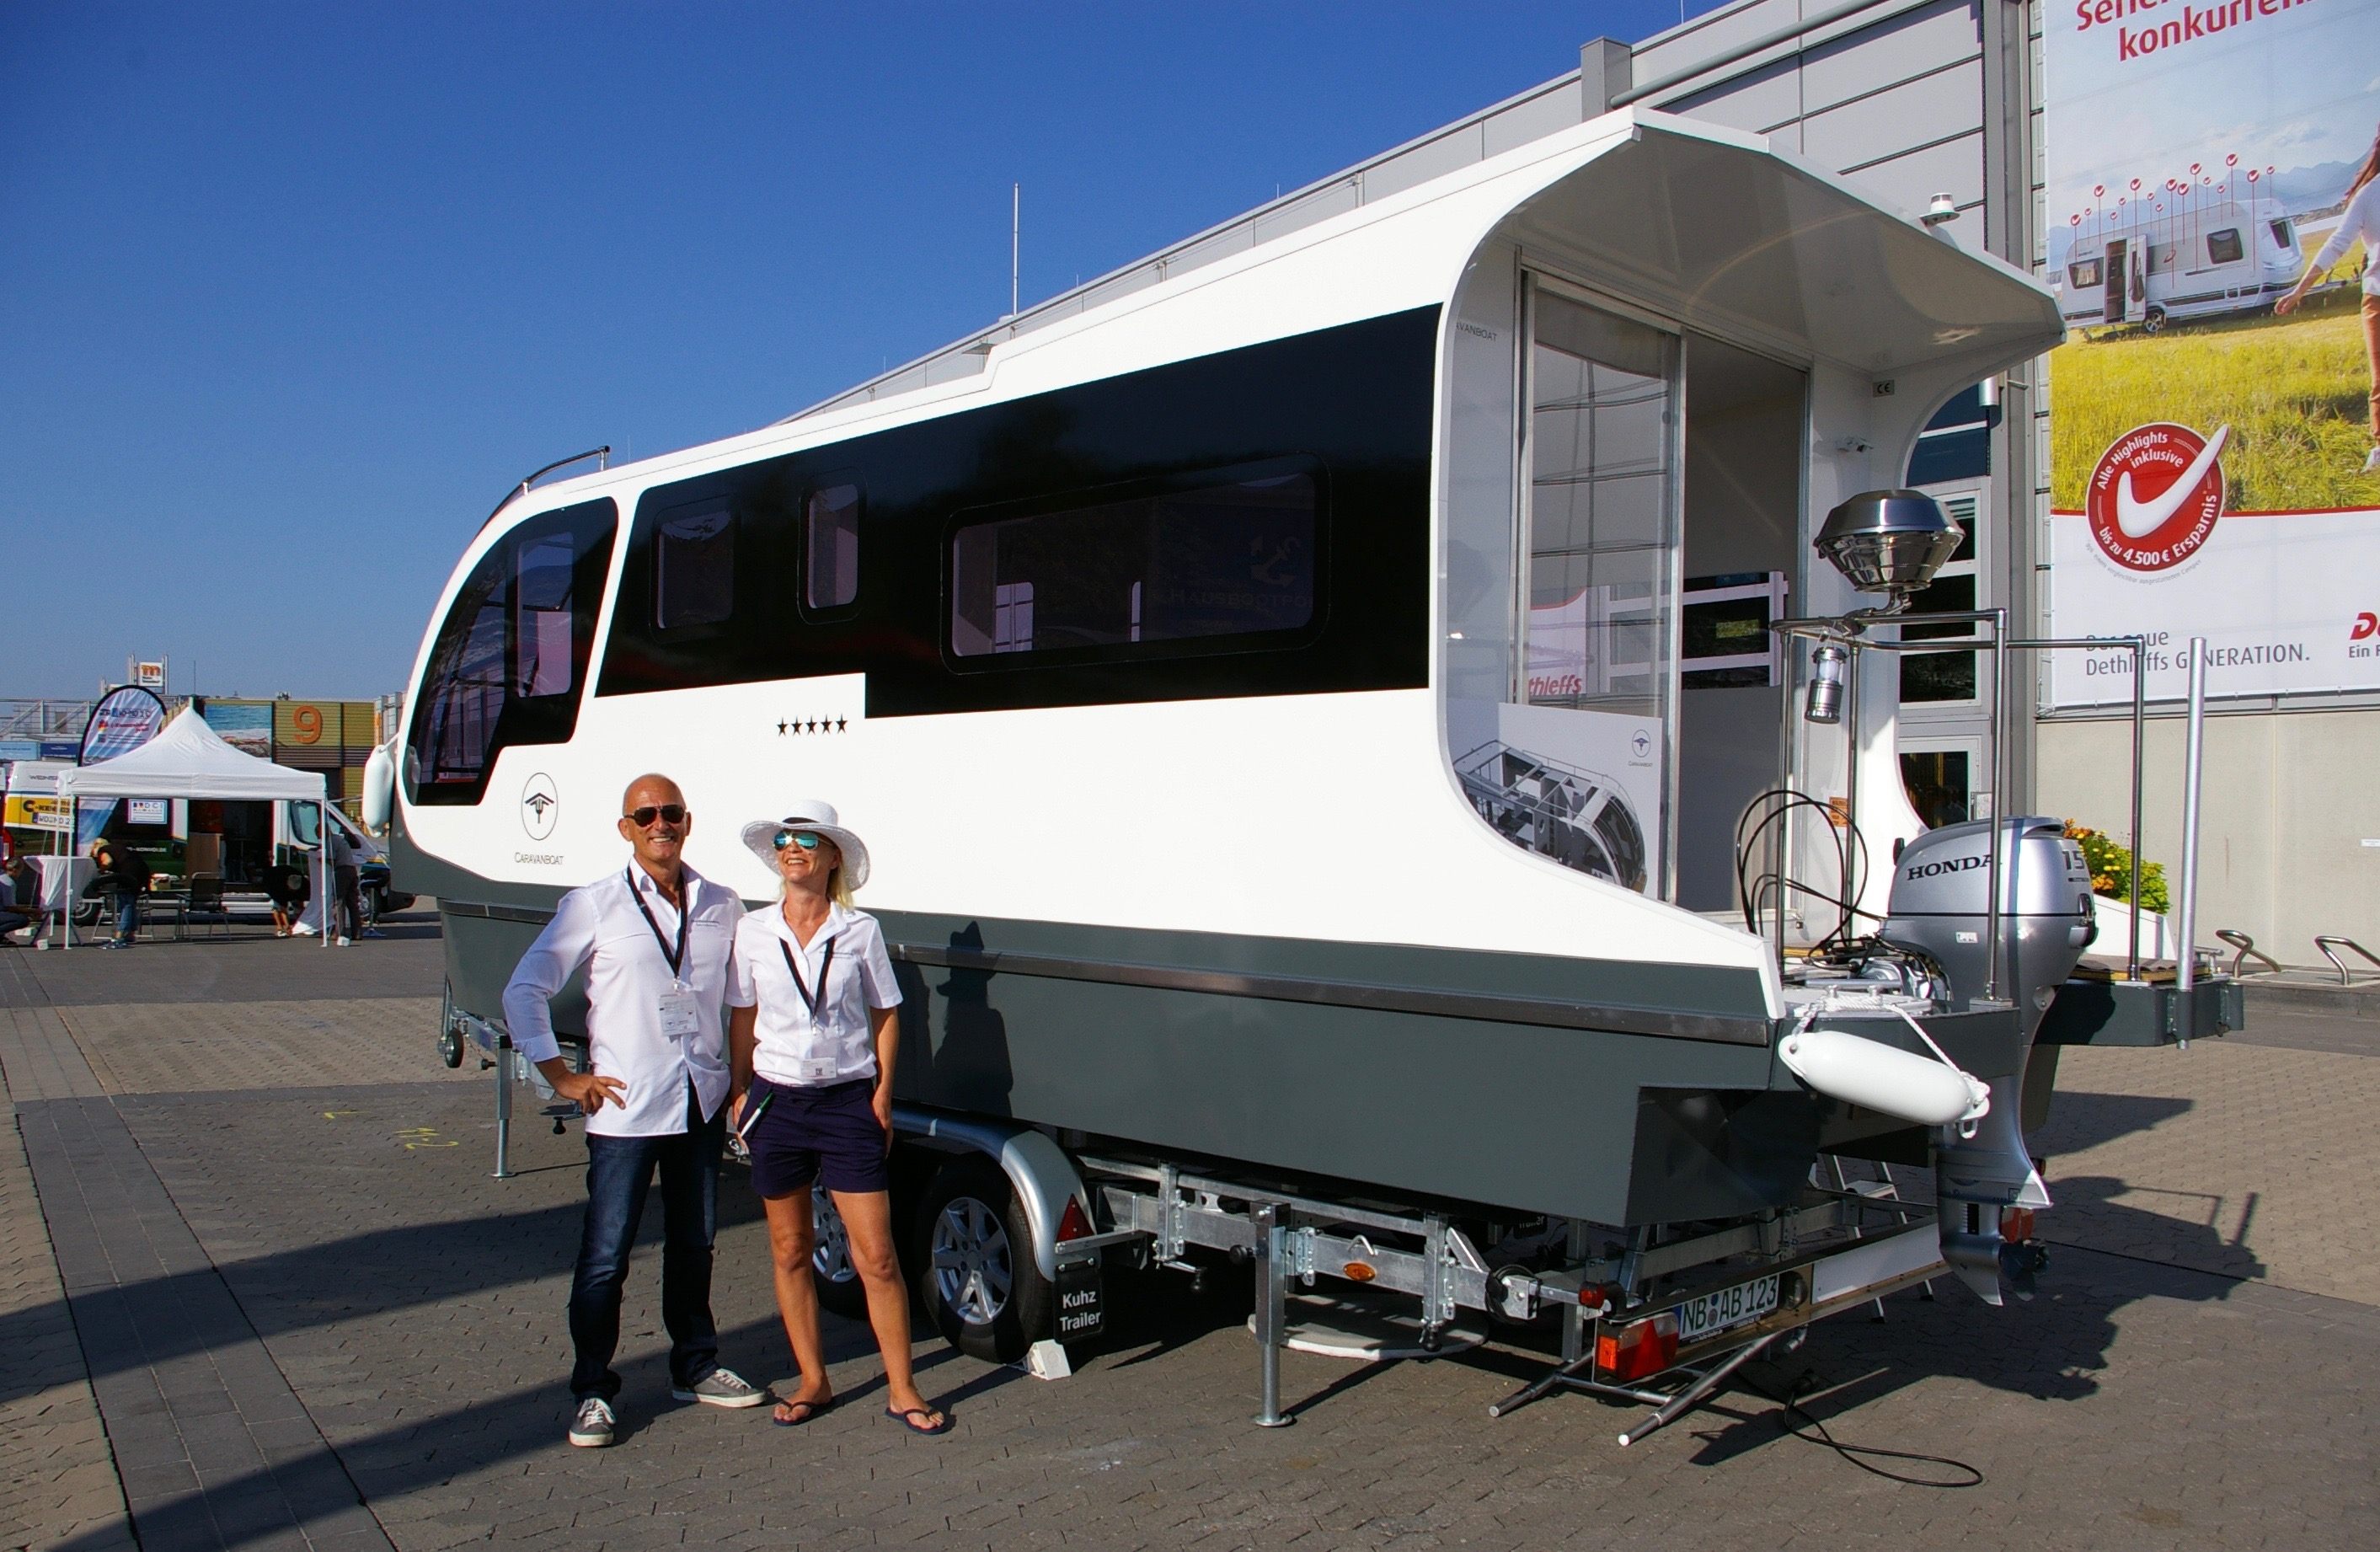 This $67K camper is also a boat